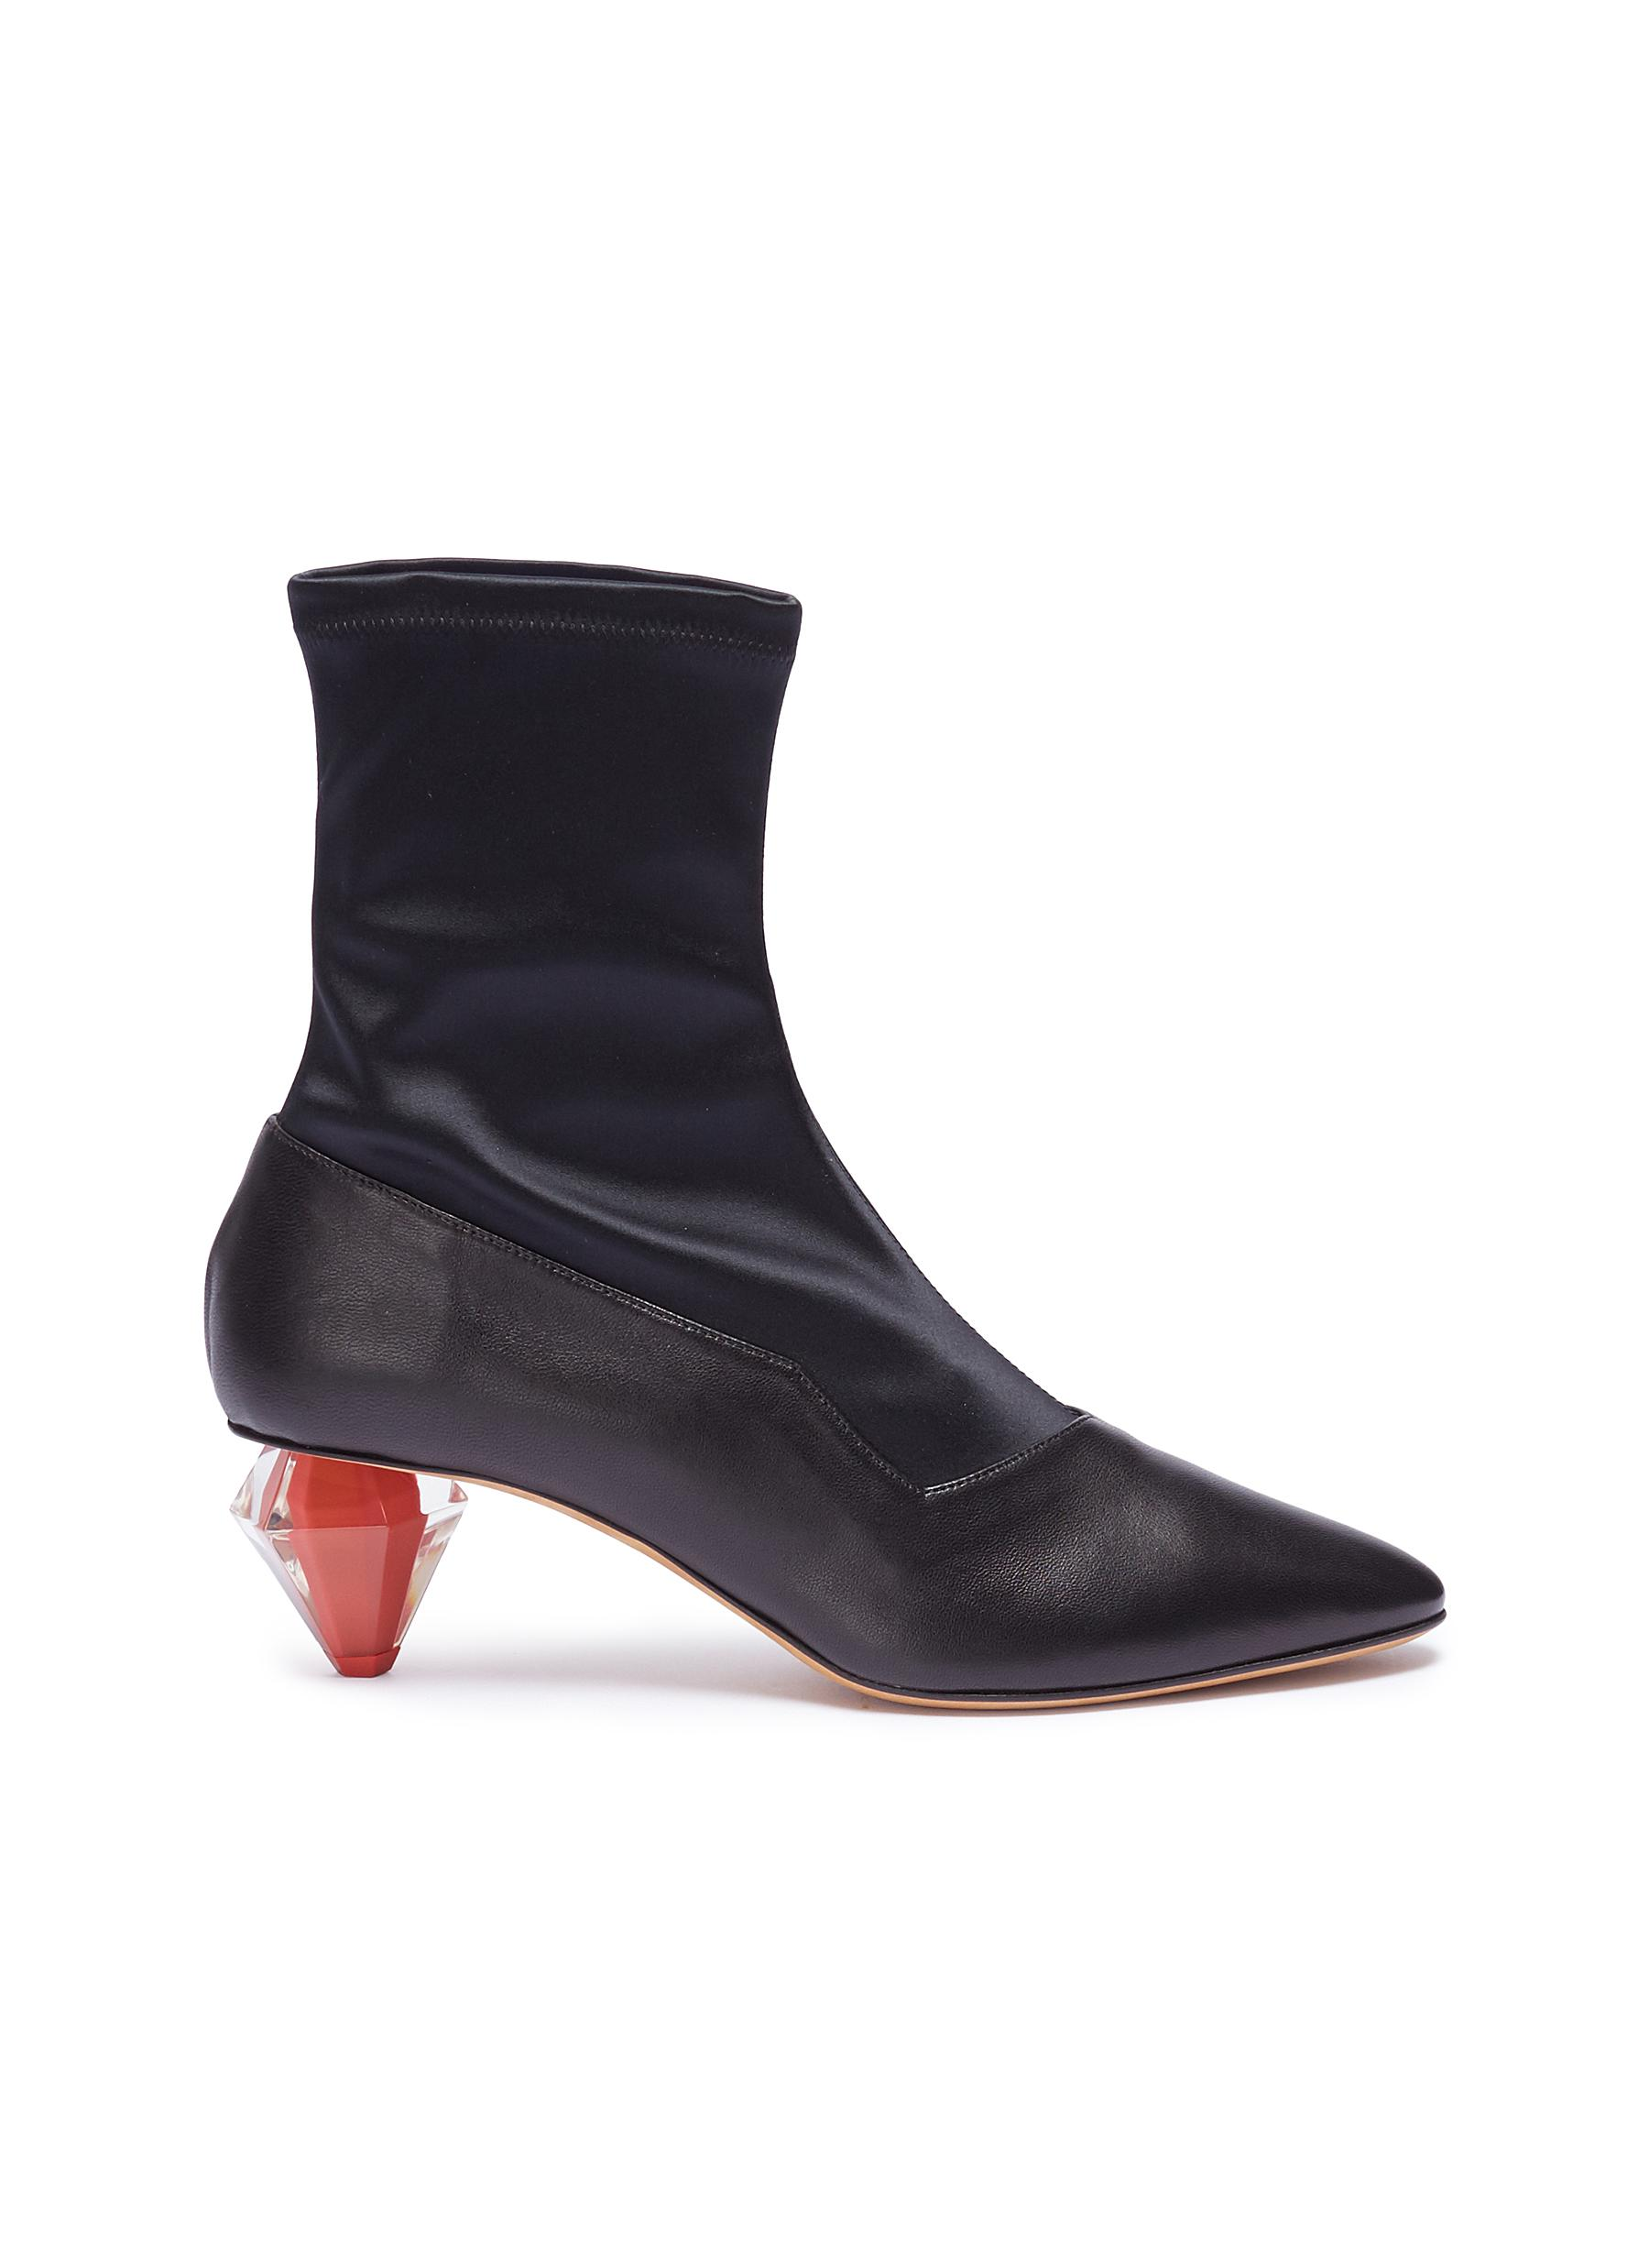 Diamante geometric heel satin panel leather boots by Gray Matters